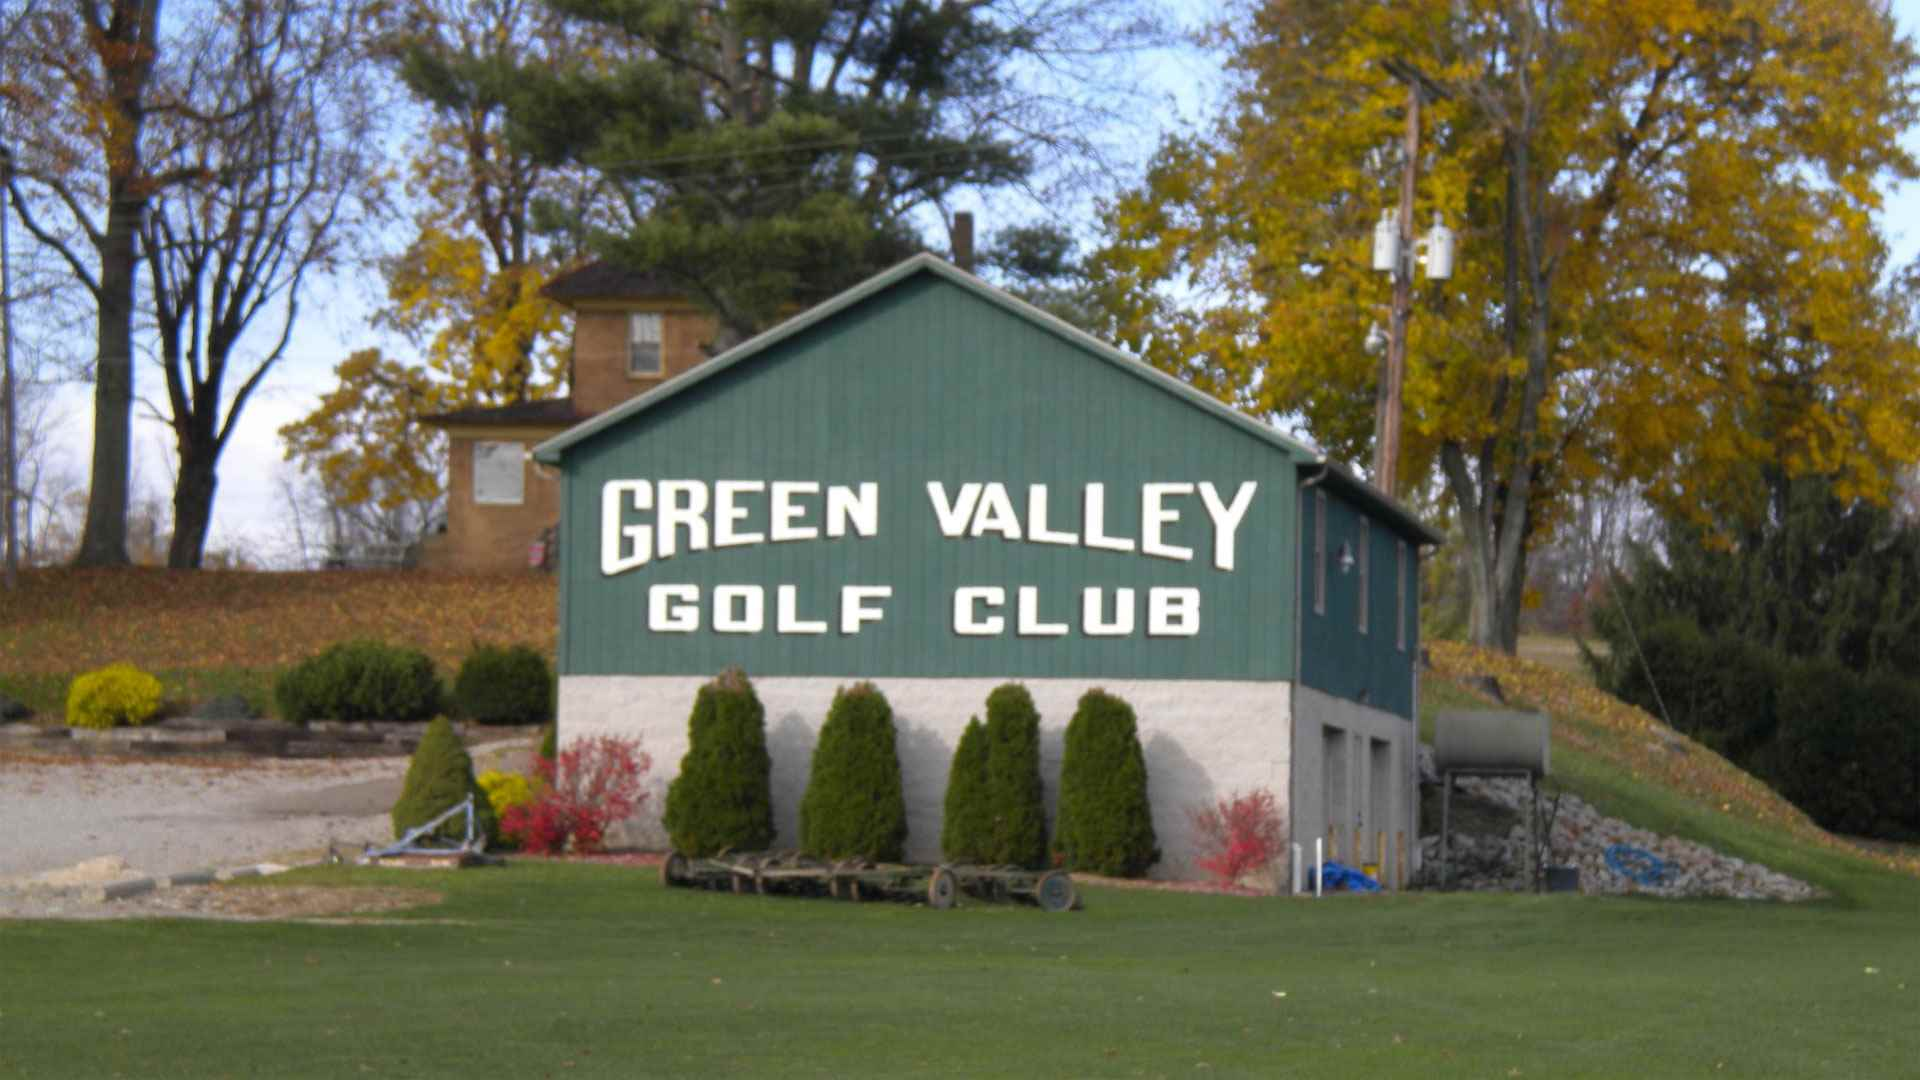 Green Valley Golf Club